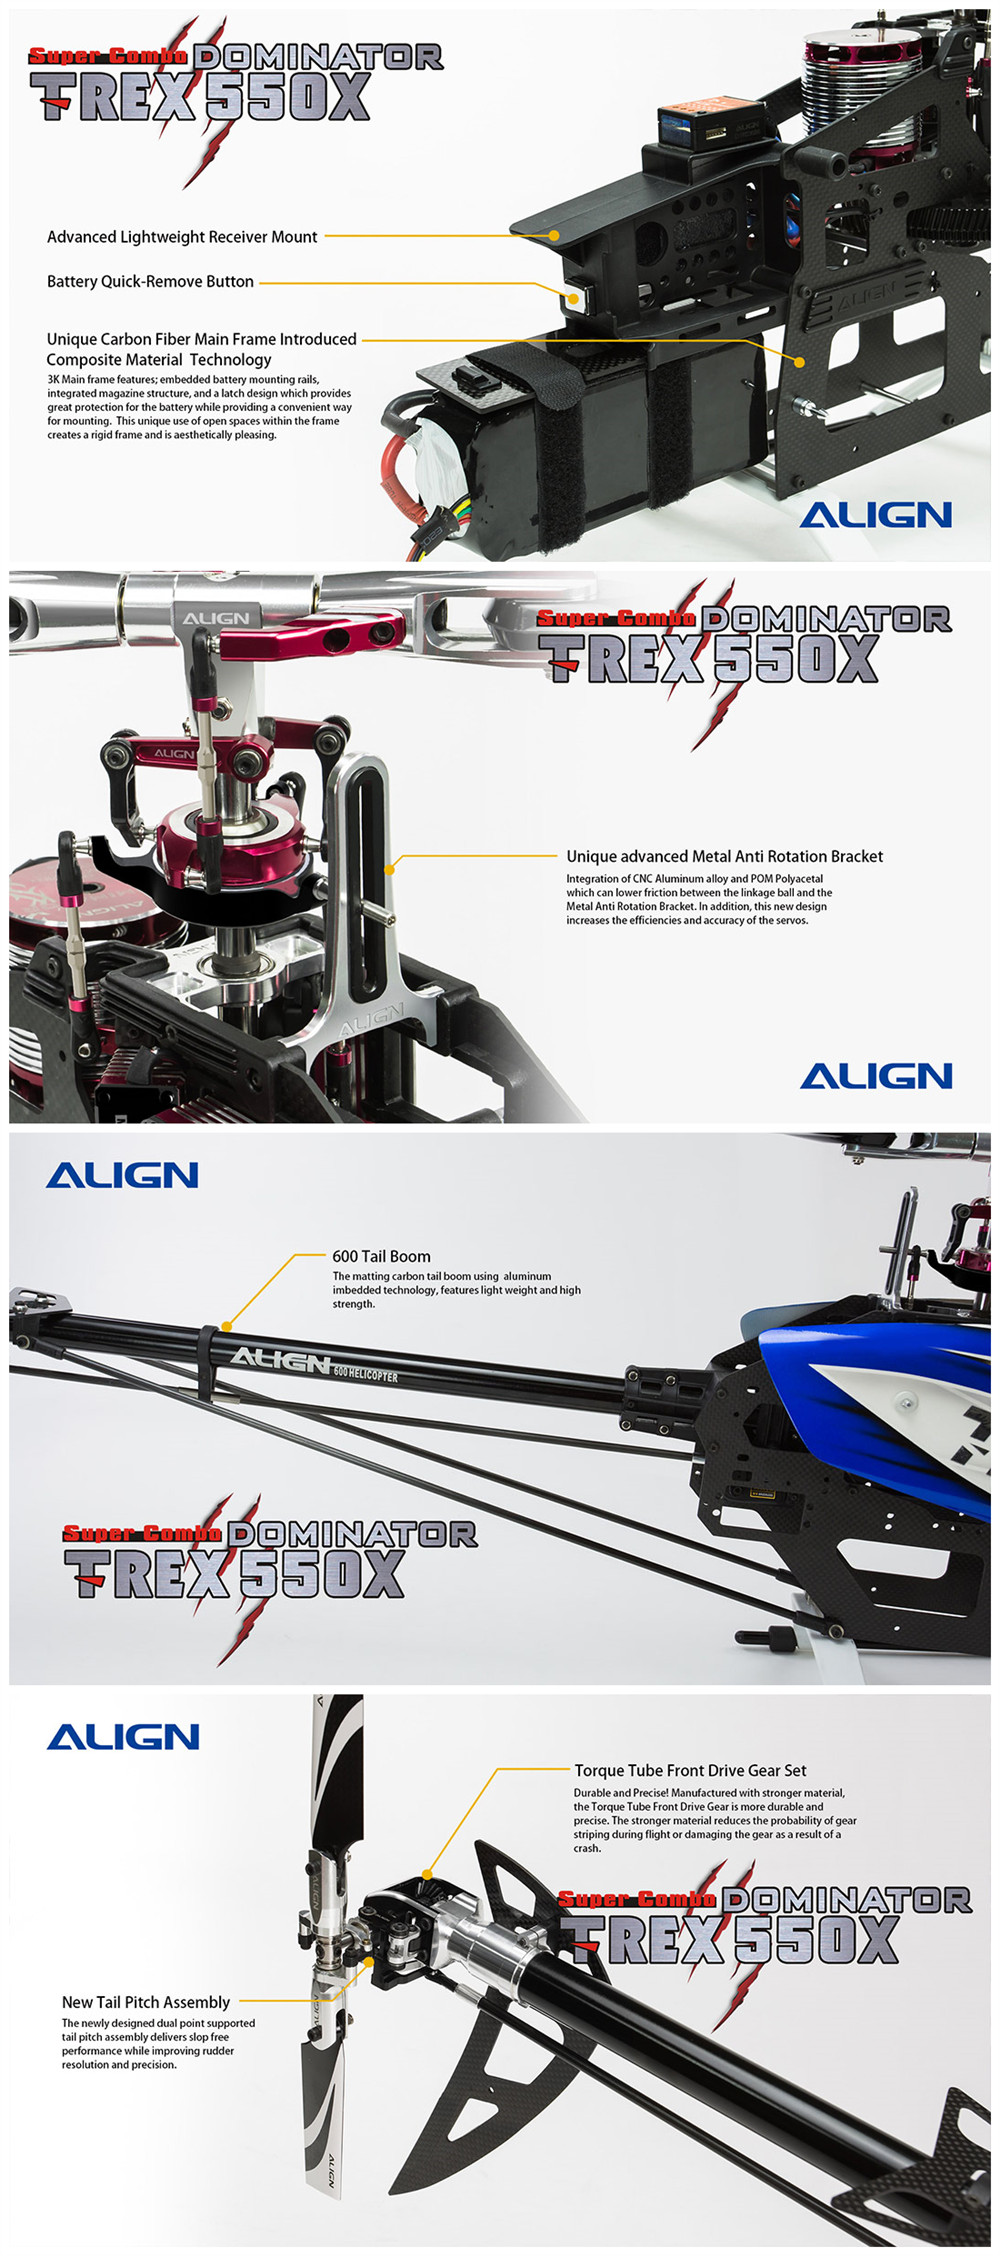 ALIGN T-REX 550X DOMINATOR RC Helicopter